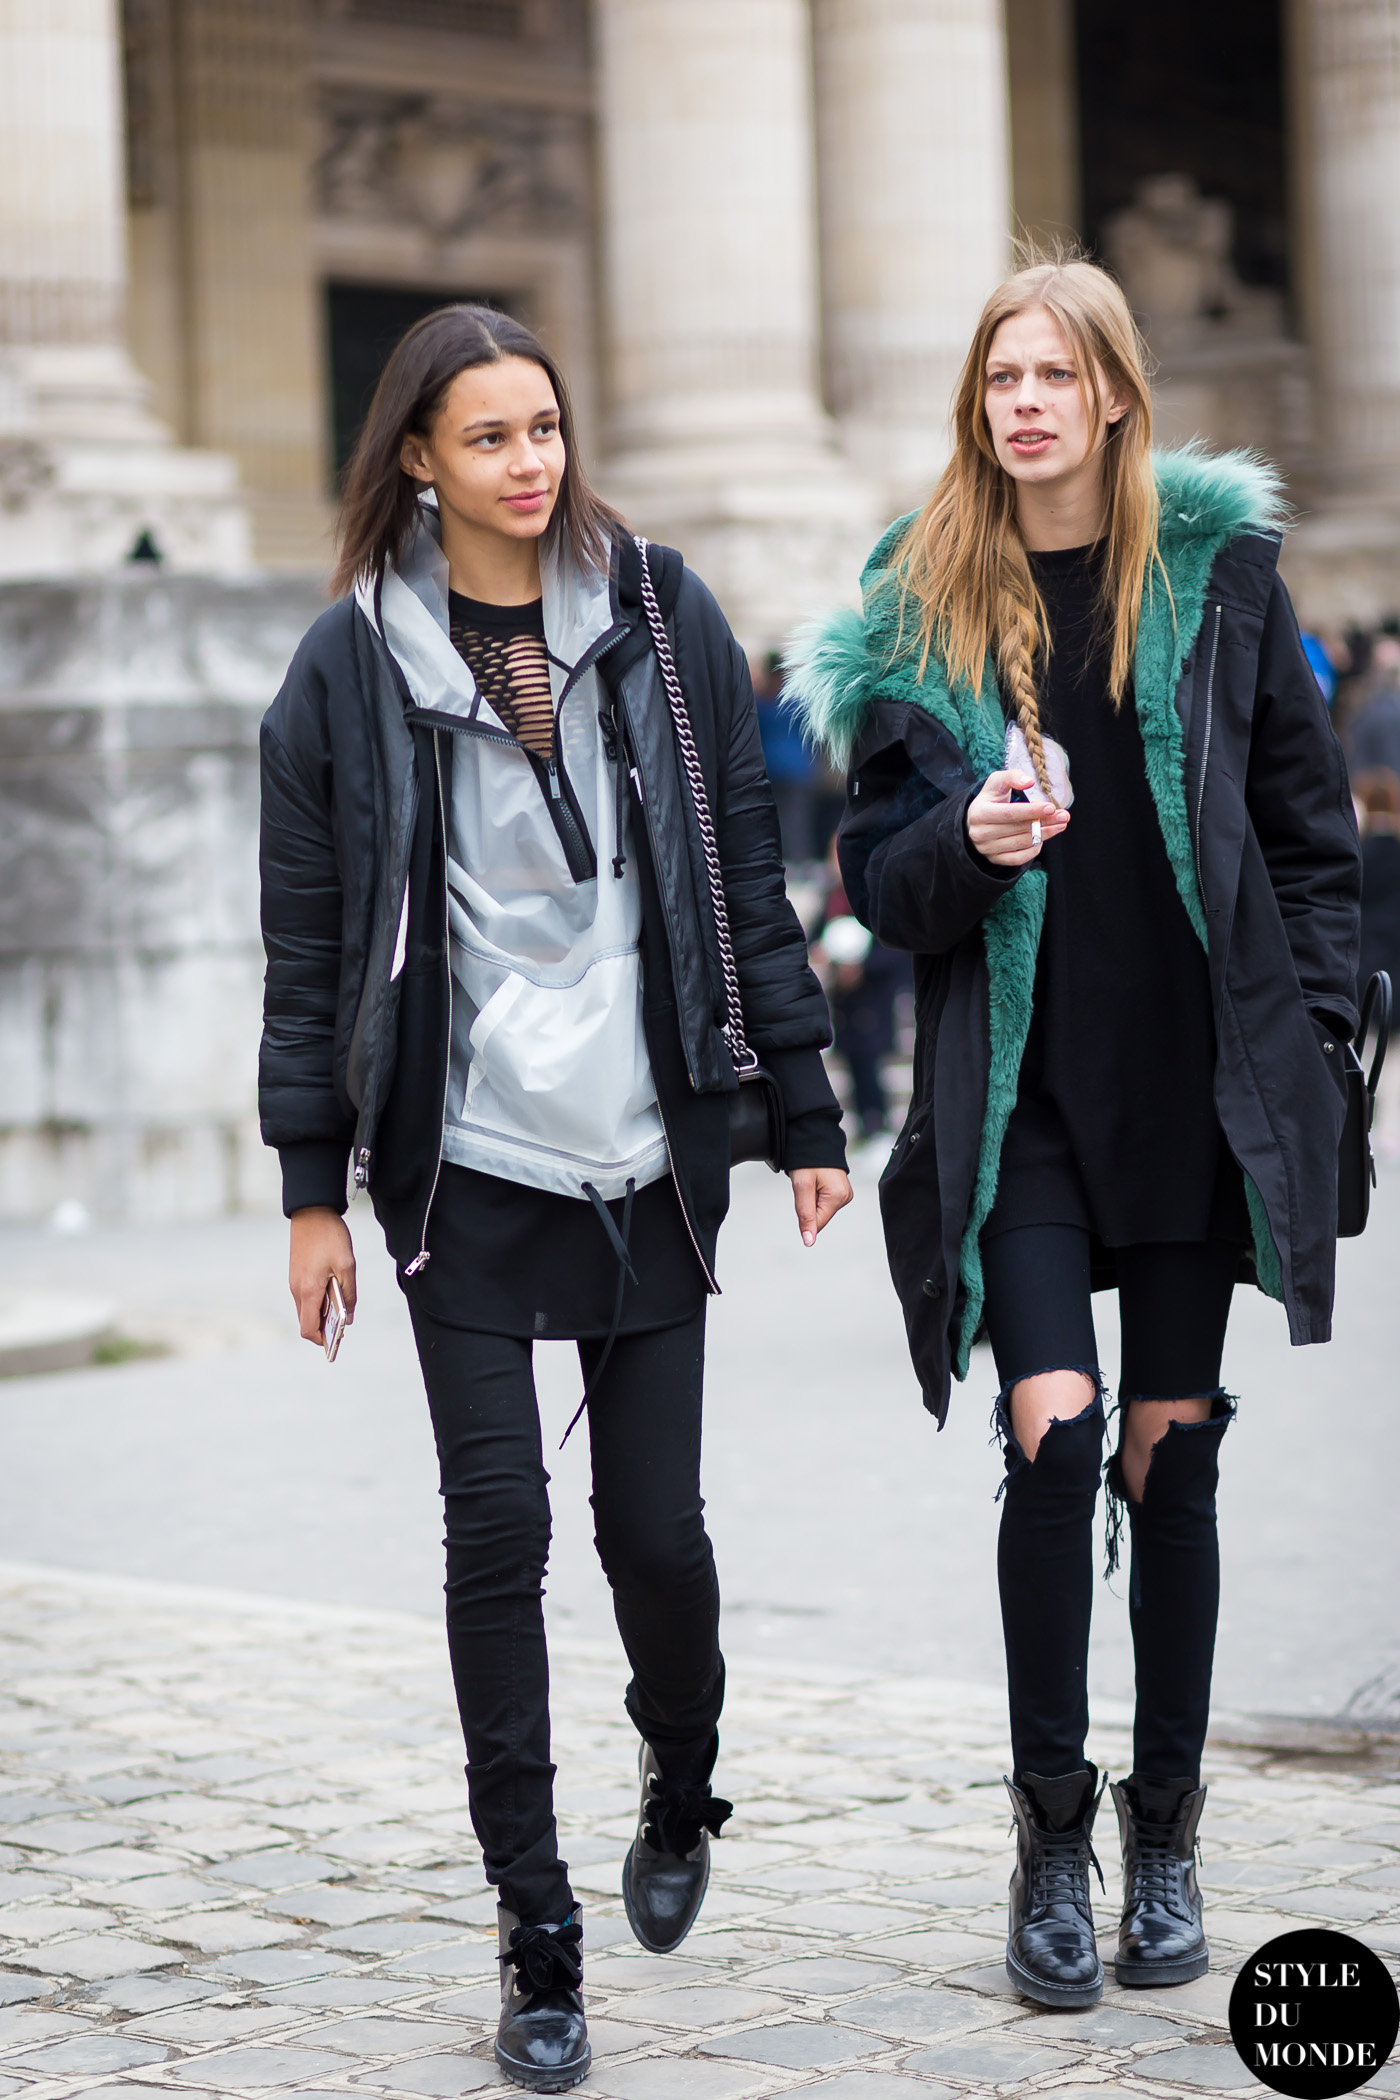 Binx Walton and Lexi Boling Street Style Street Fashion Streetsnaps by STYLEDUMONDE Street Style Fashion Blog